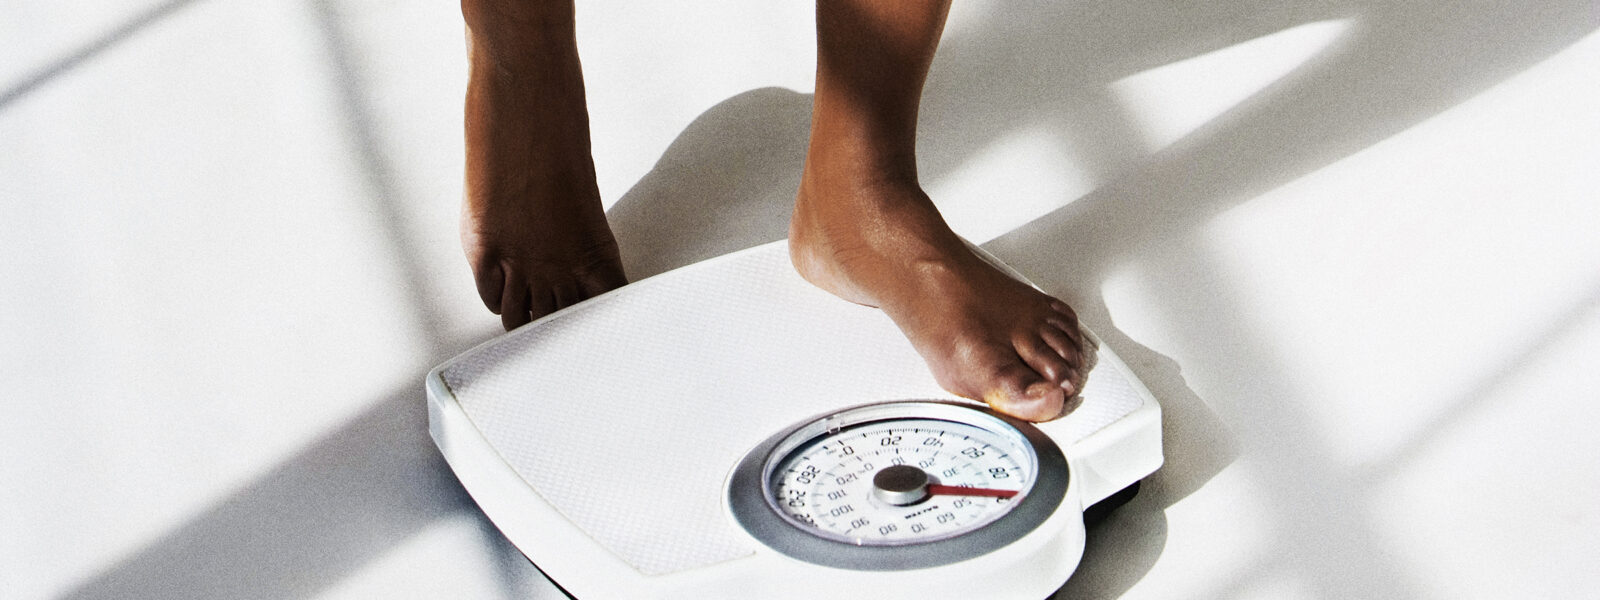 Advanced Wellness and Rejuvenation Announces Weight Loss for Women